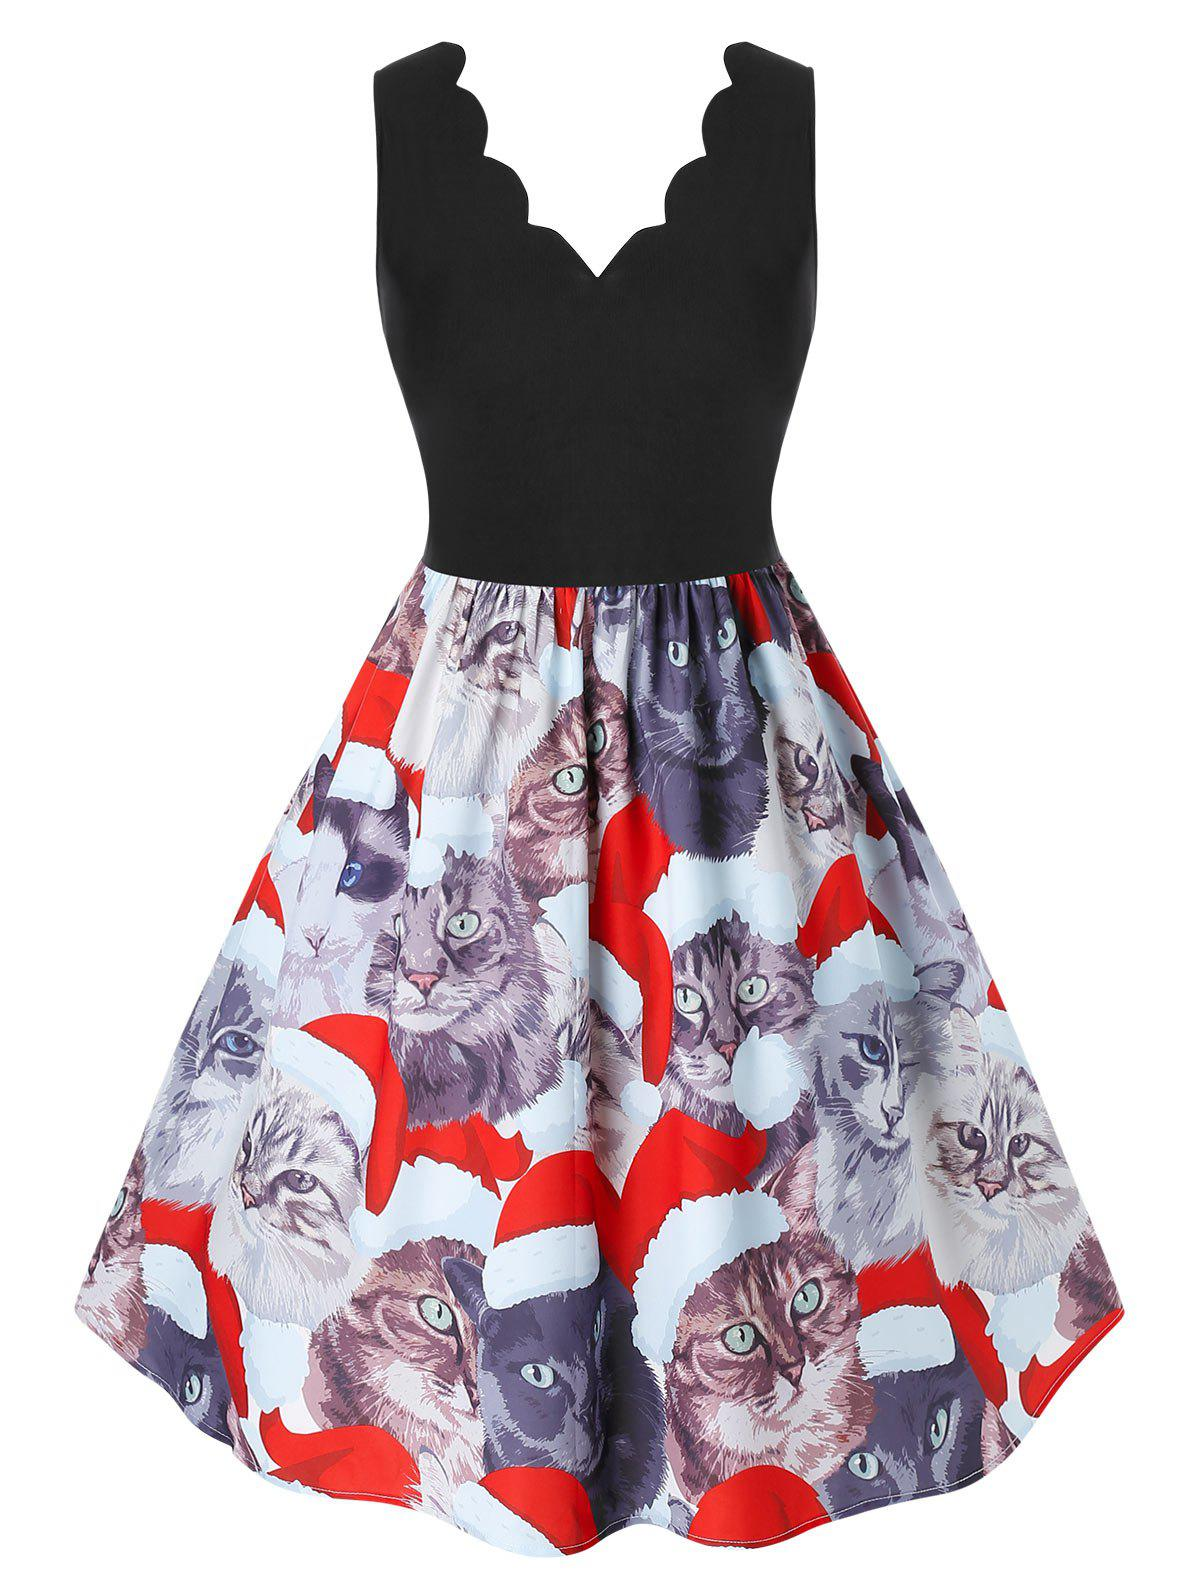 Chic Plus Size Christmas Scalloped Cat Print Dress